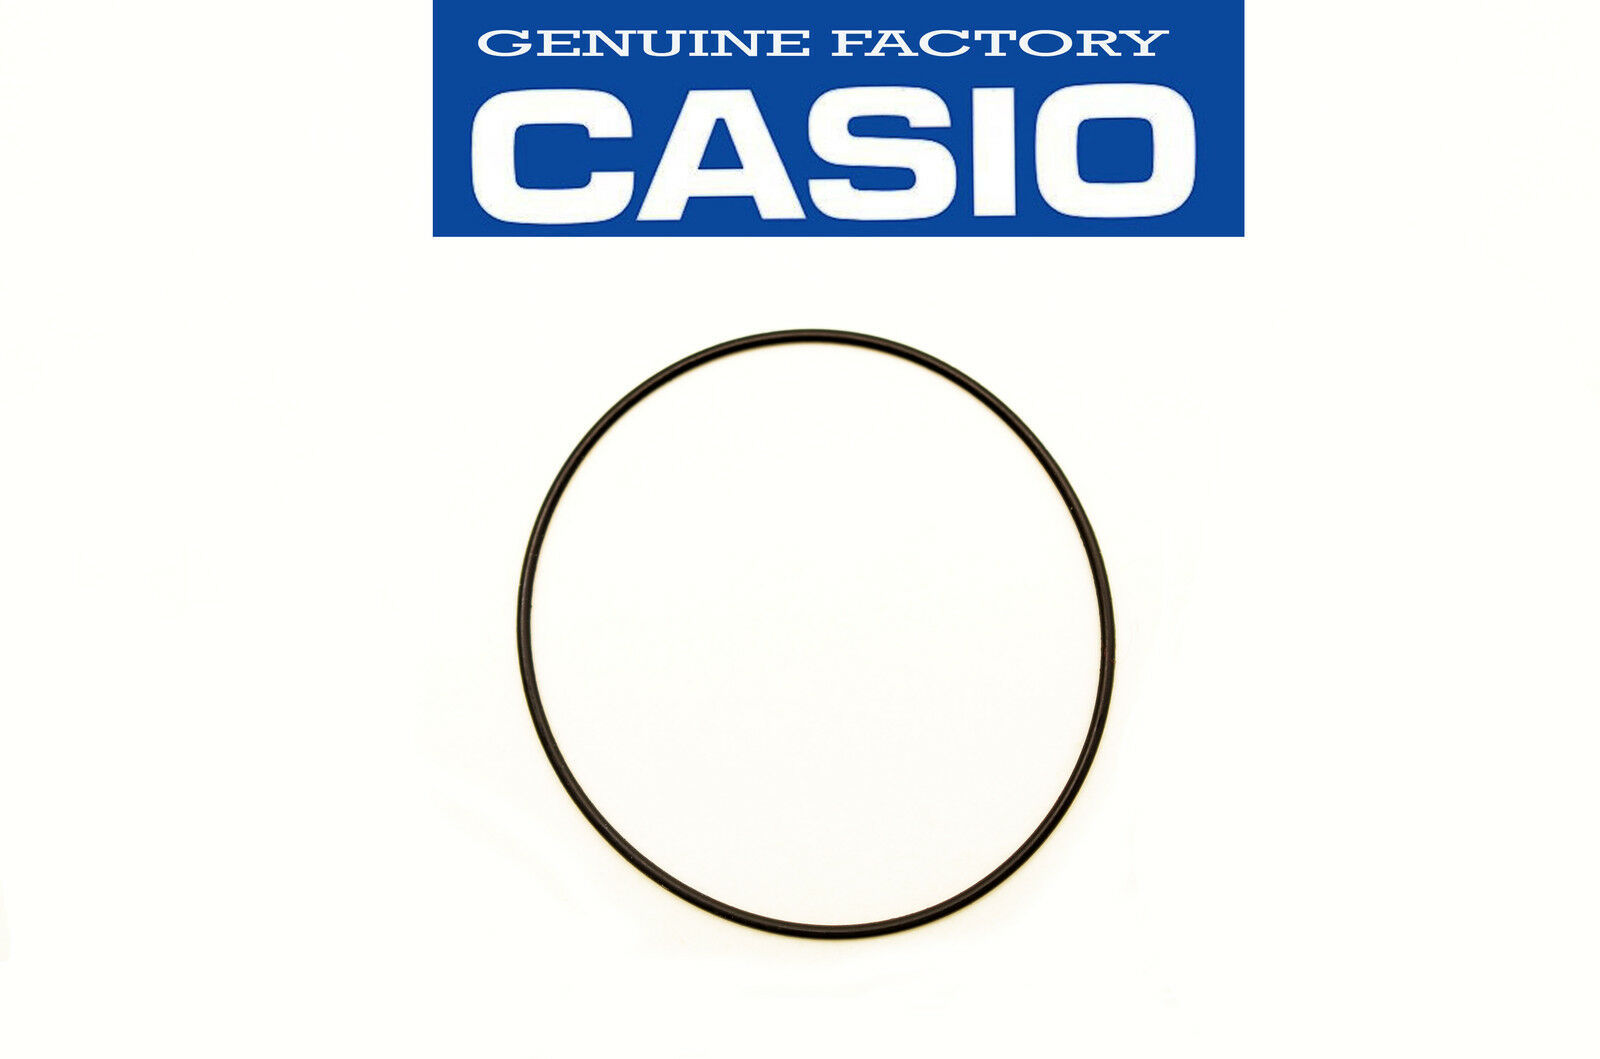 Primary image for Genuine Casio G-SHOCK WATCH GASKET O-RING  G-1700 G-1710 GW-1700  GW-1800